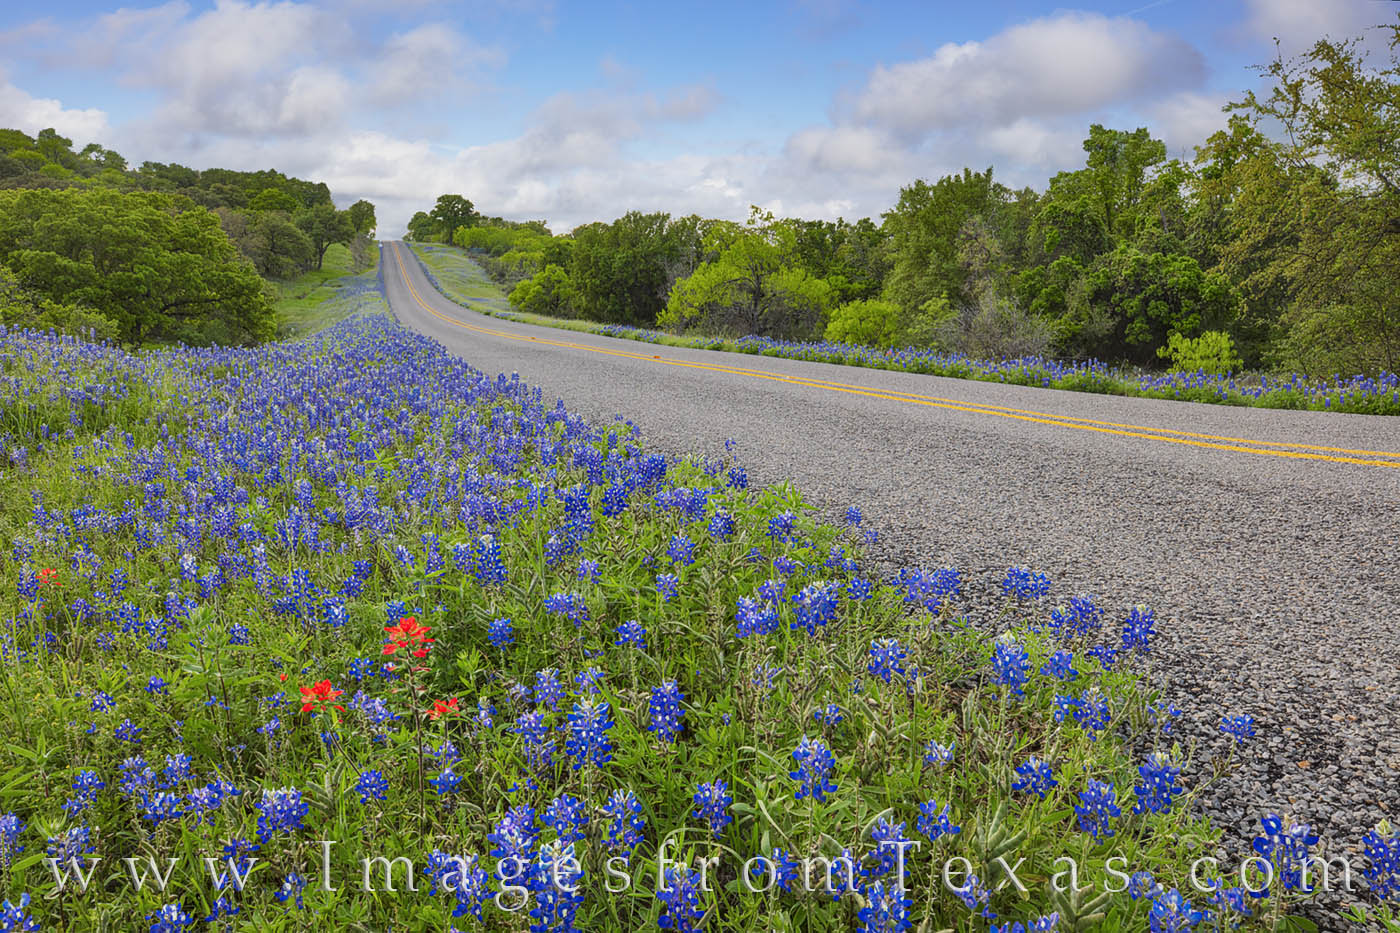 bluebonnets, county roads, ranch roads, wildflowers, paintbrush, hill country drives, afternoons, texas hill country, photo